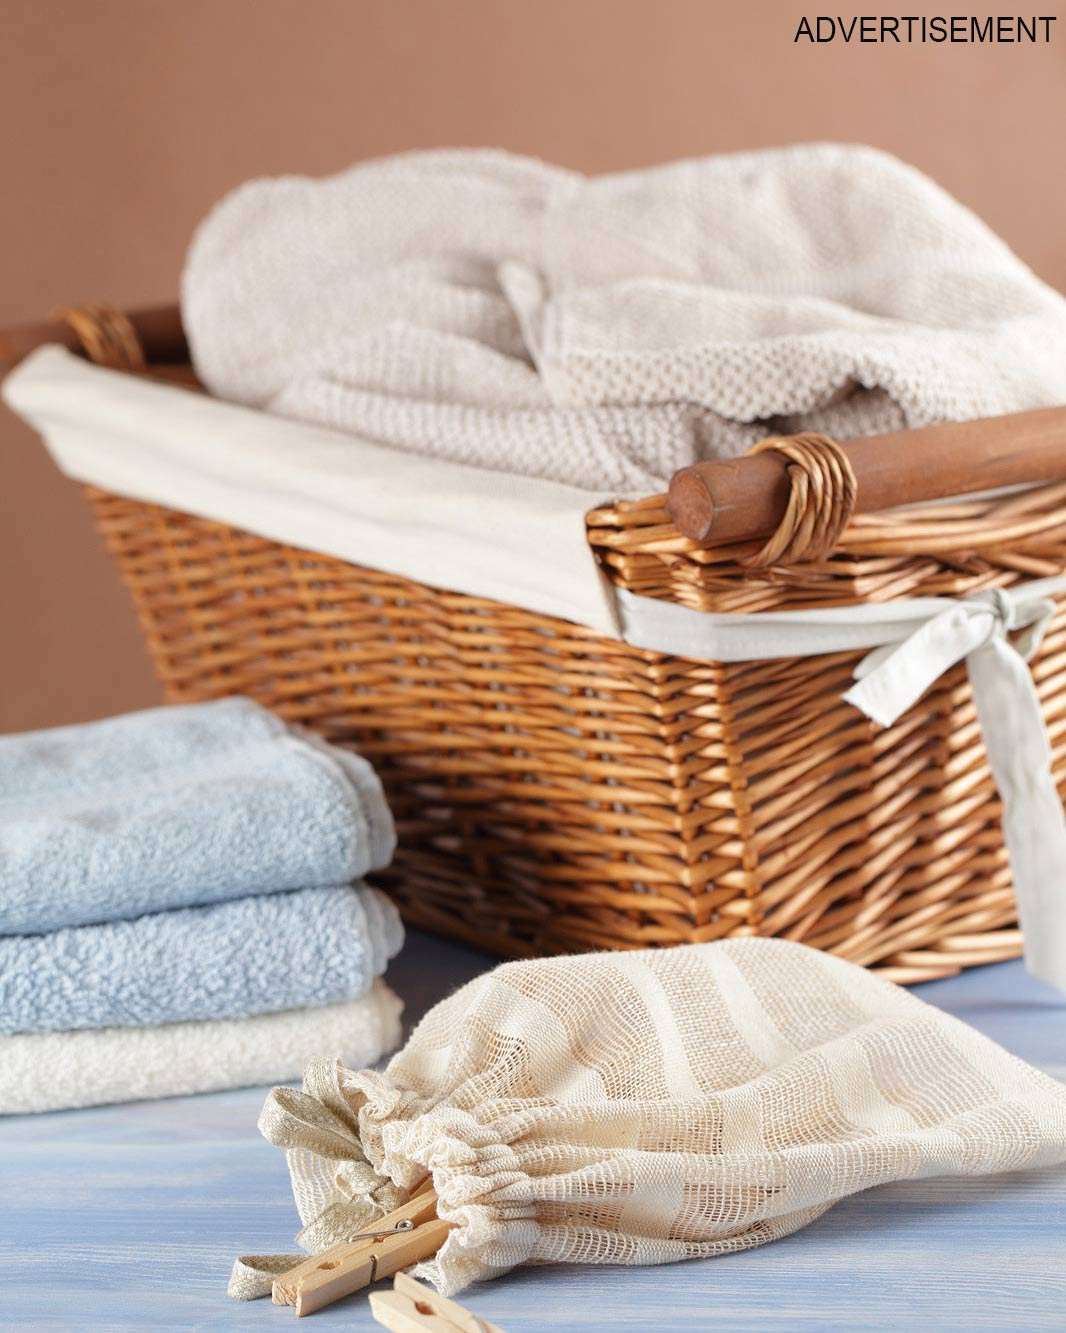 natural-laundry-boost-opener-image-clothes-pins-new-0316.jpg